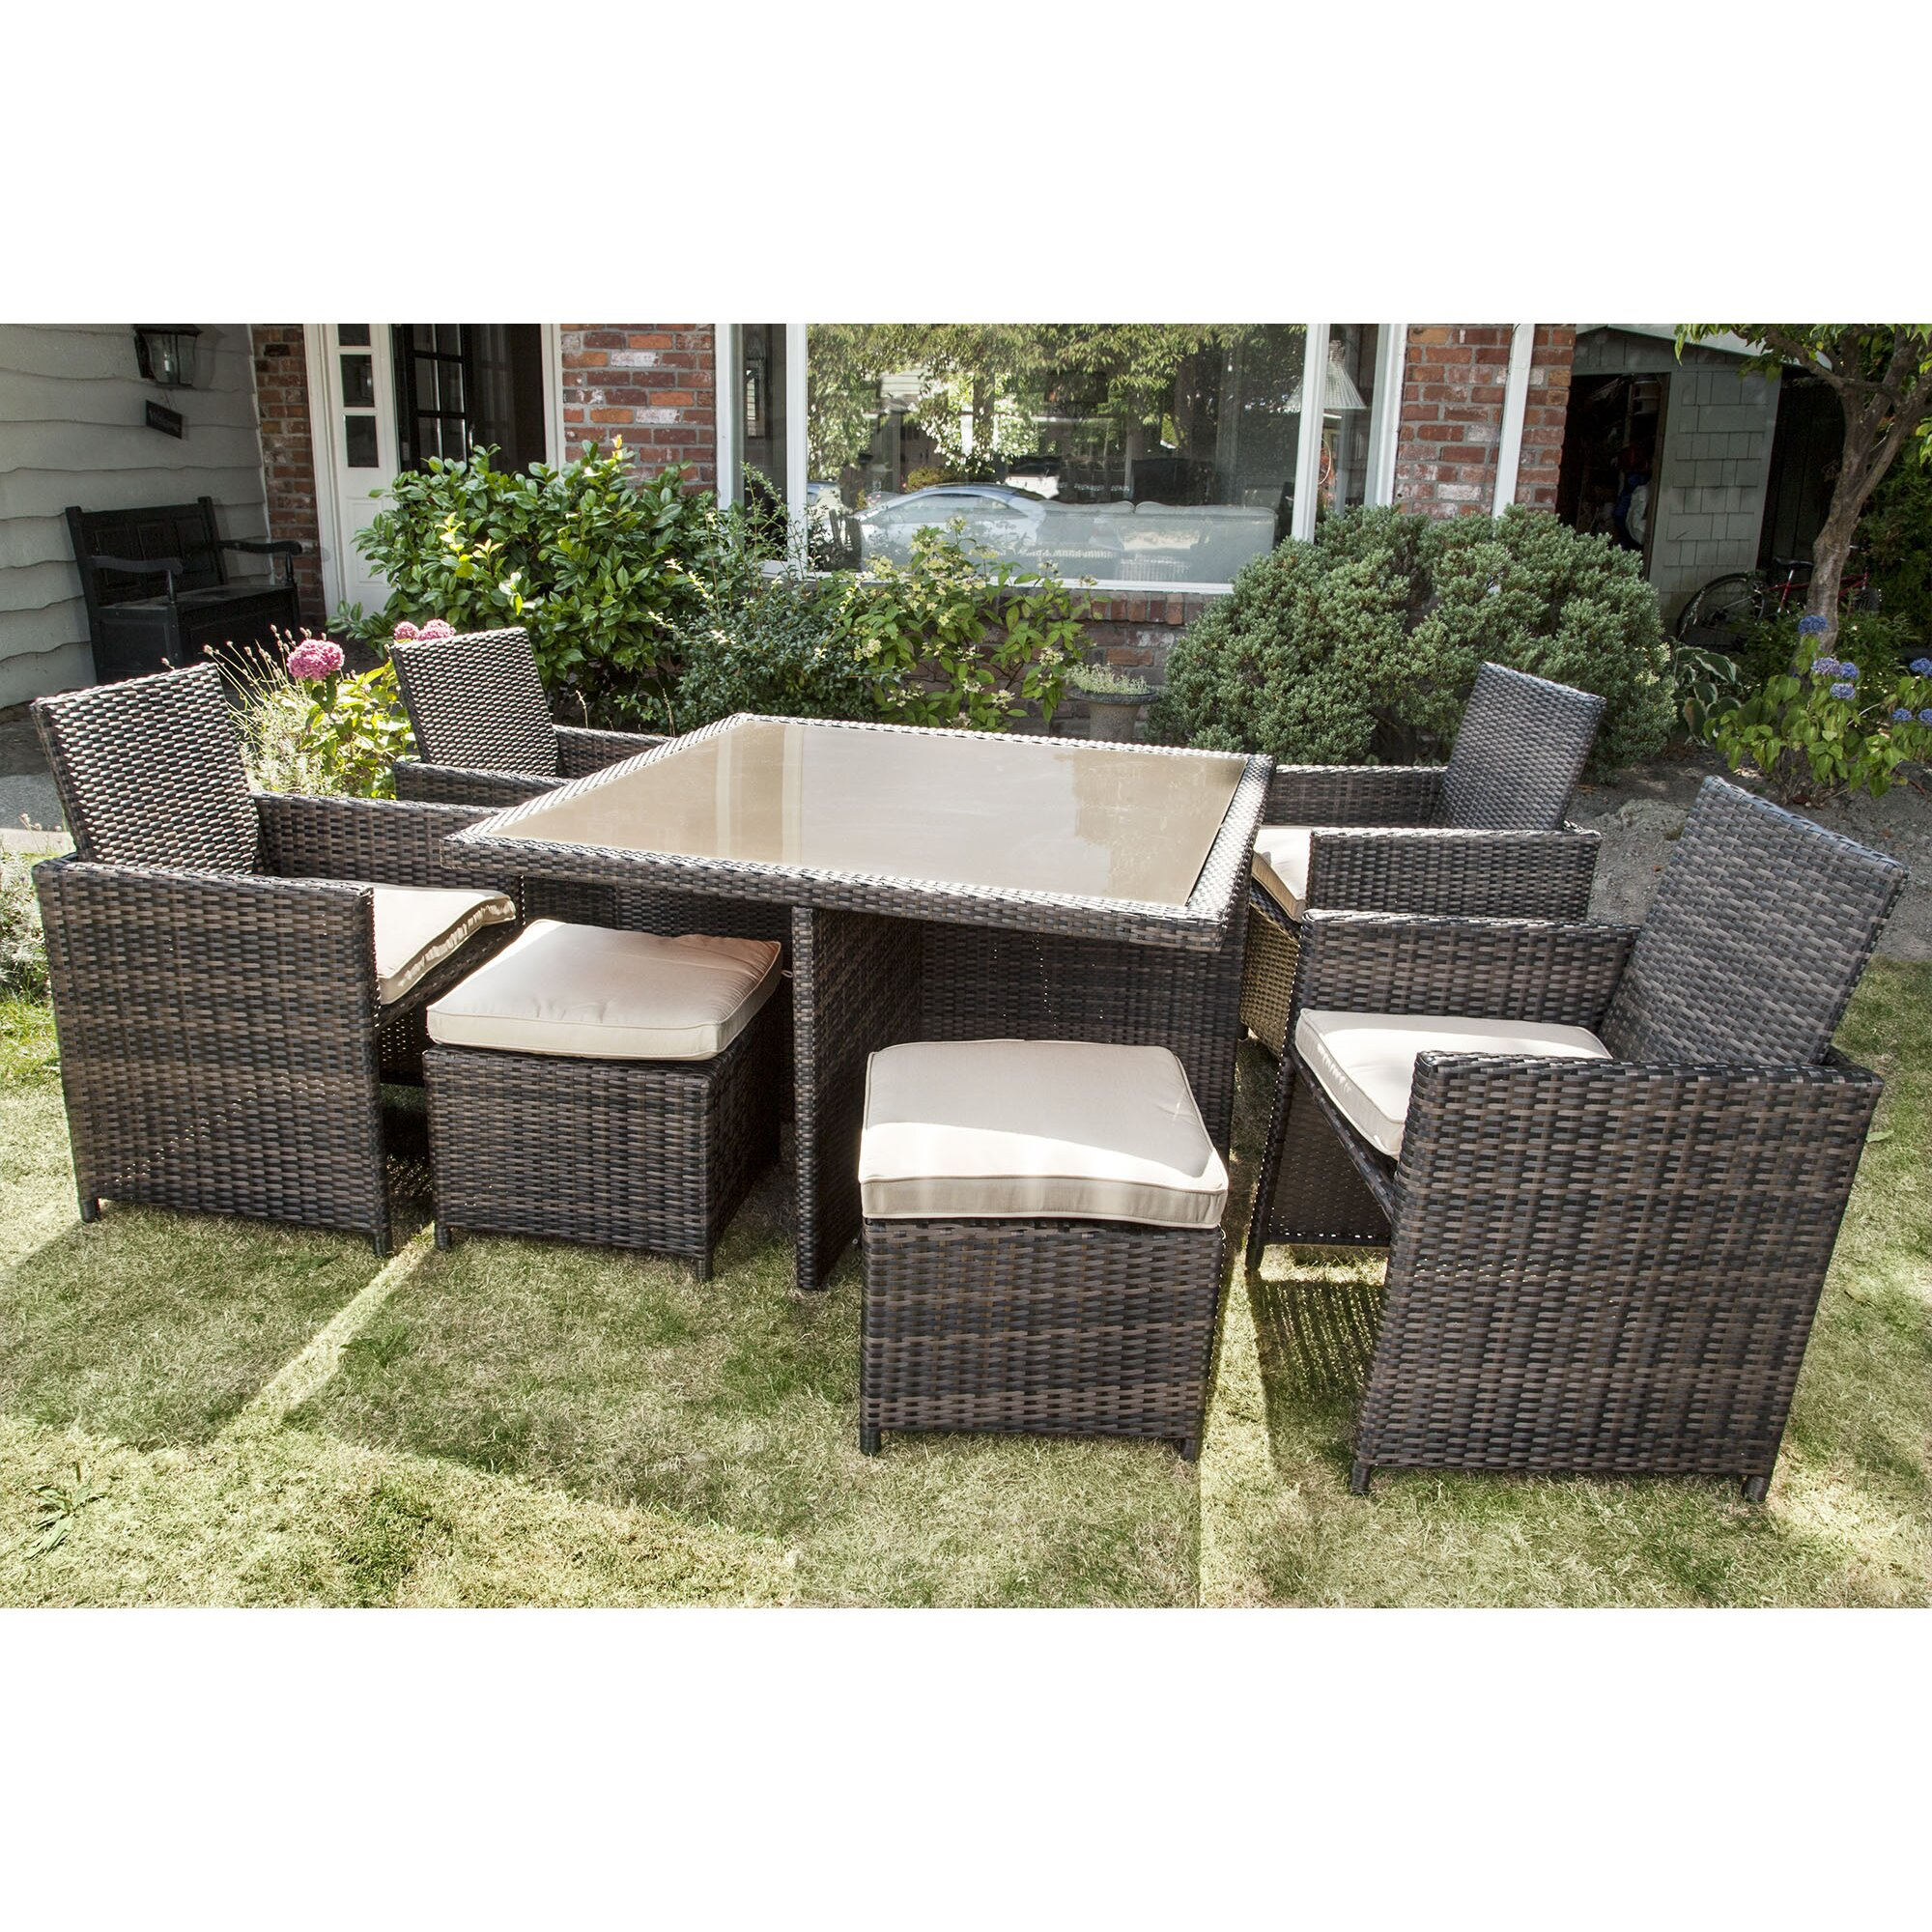 Brayden Studio Keesler 9 Piece Dining Set With Cushions Reviews Wayfair